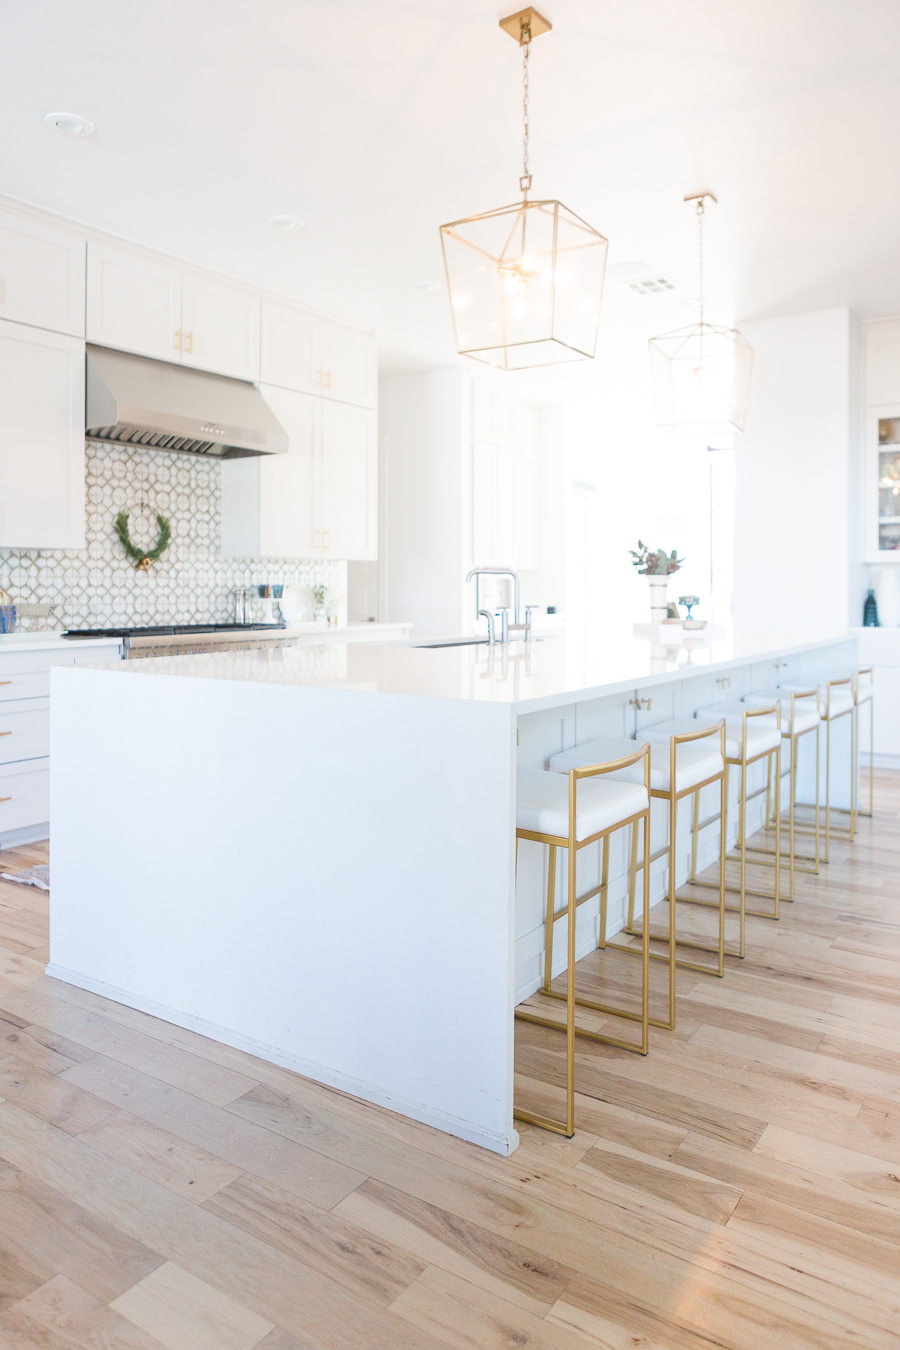 10 Affordable Gold Bar Stools For Home Design Cc And Mike Lifestyle And Design Blog